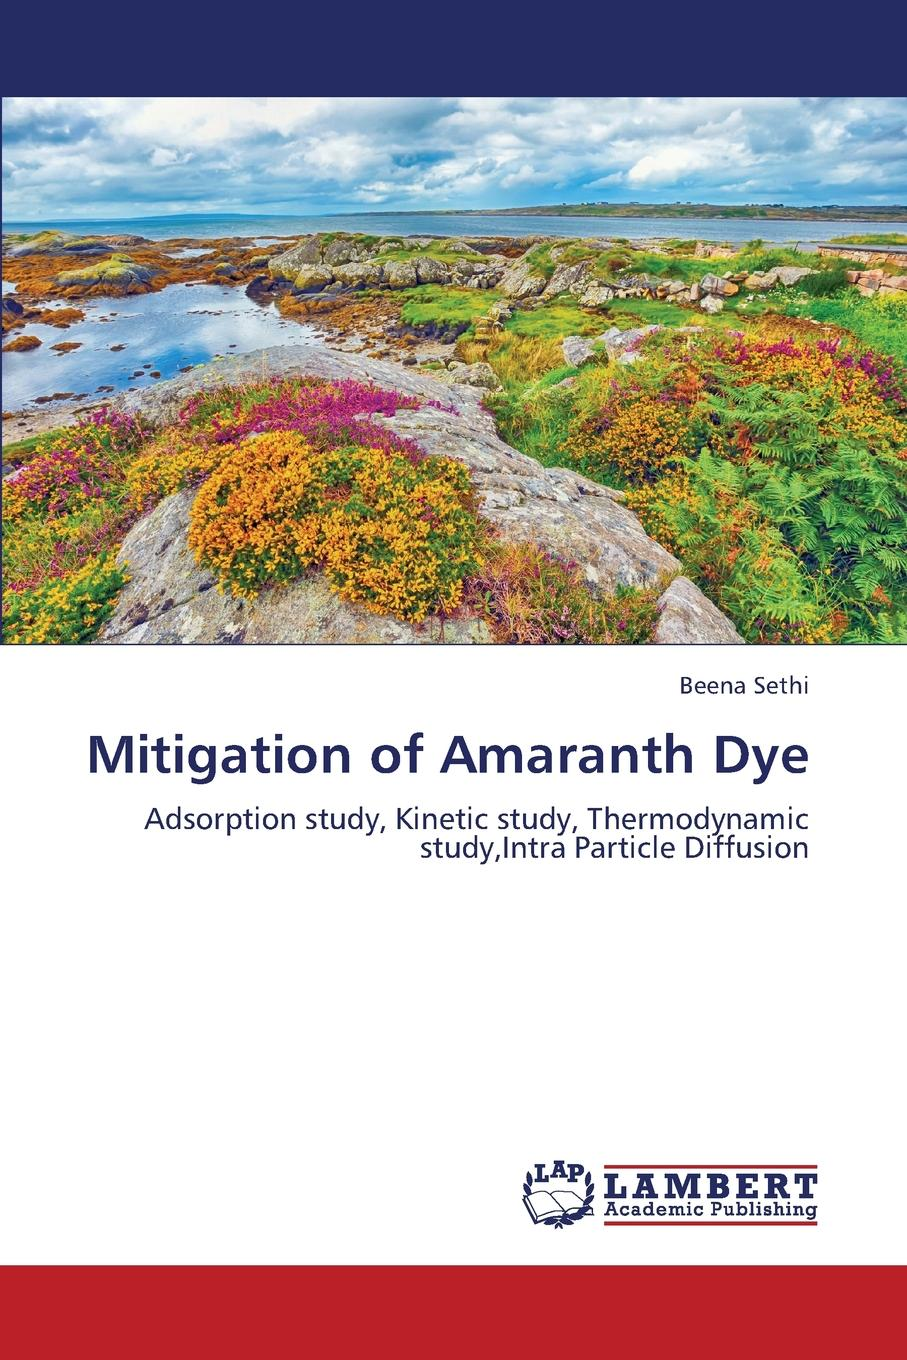 Sethi Beena Mitigation of Amaranth Dye textbook on adsorption of heavy metals from aqueous systems